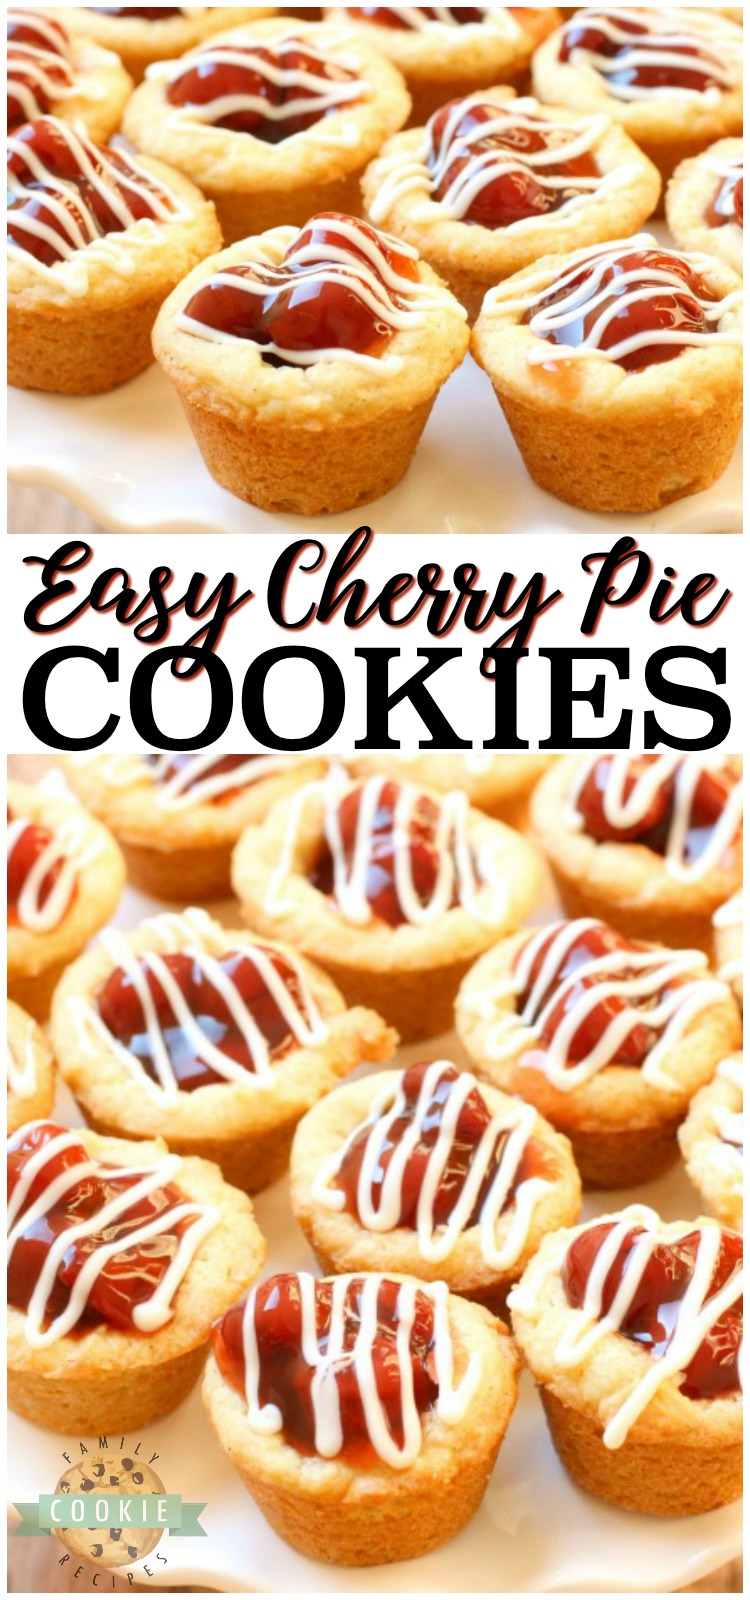 Cherry Pie Cookies are cherry pie in cookie form! Easy to make sugar cookies filled with sweet cherries and drizzled with white chocolate.